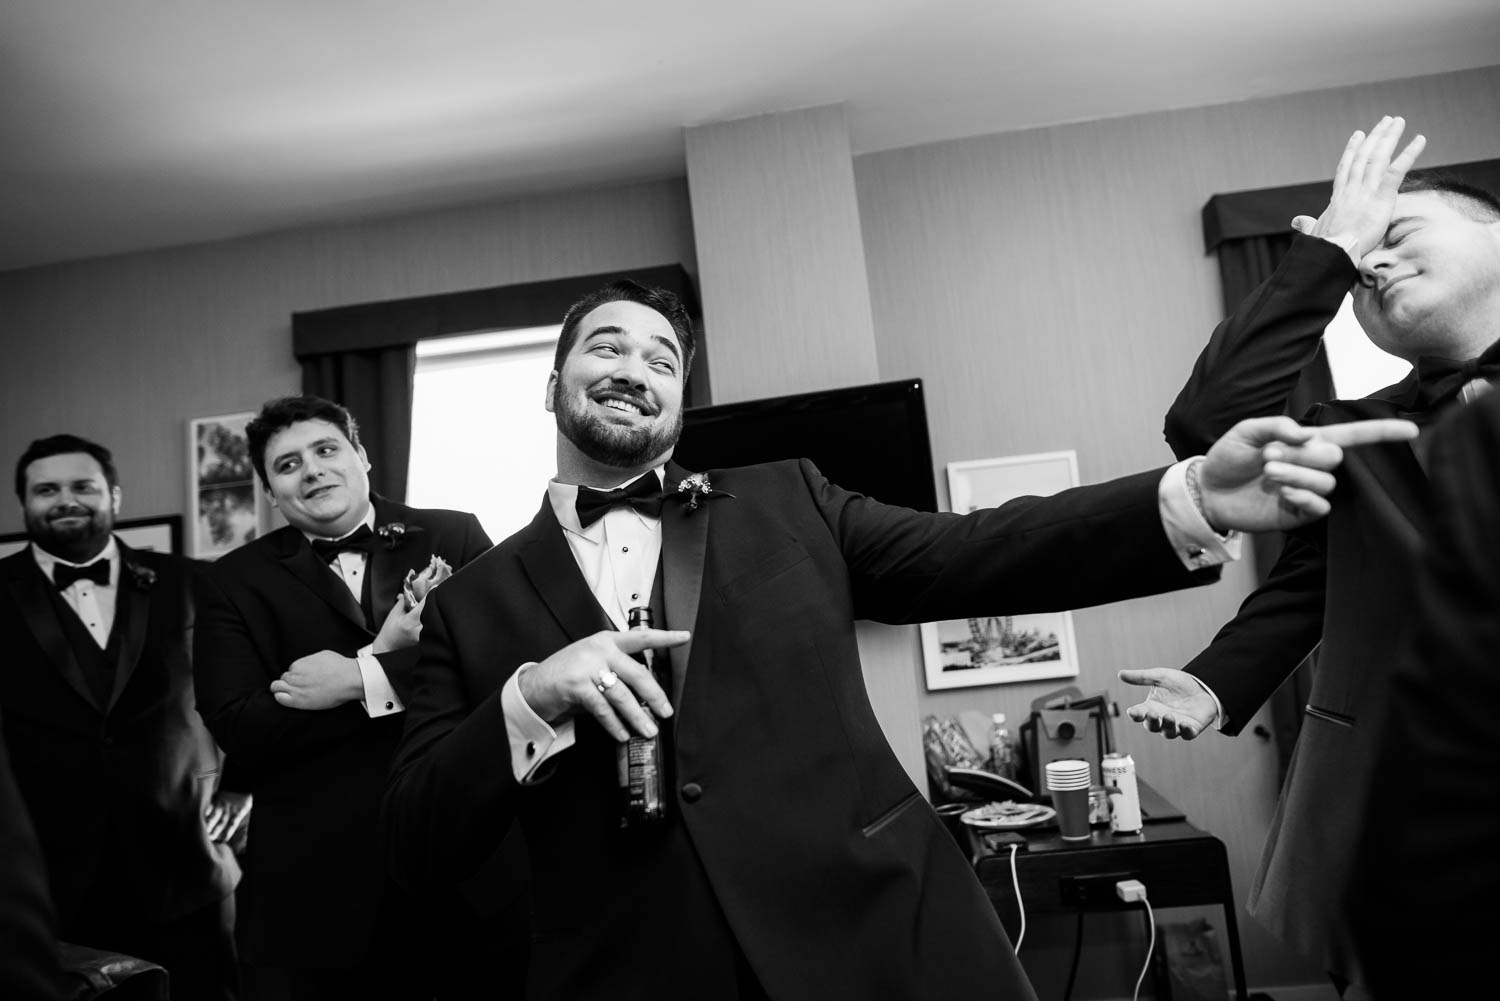 Funny moment with the groomsmen while getting ready at Hotel Lincoln Chicago wedding.